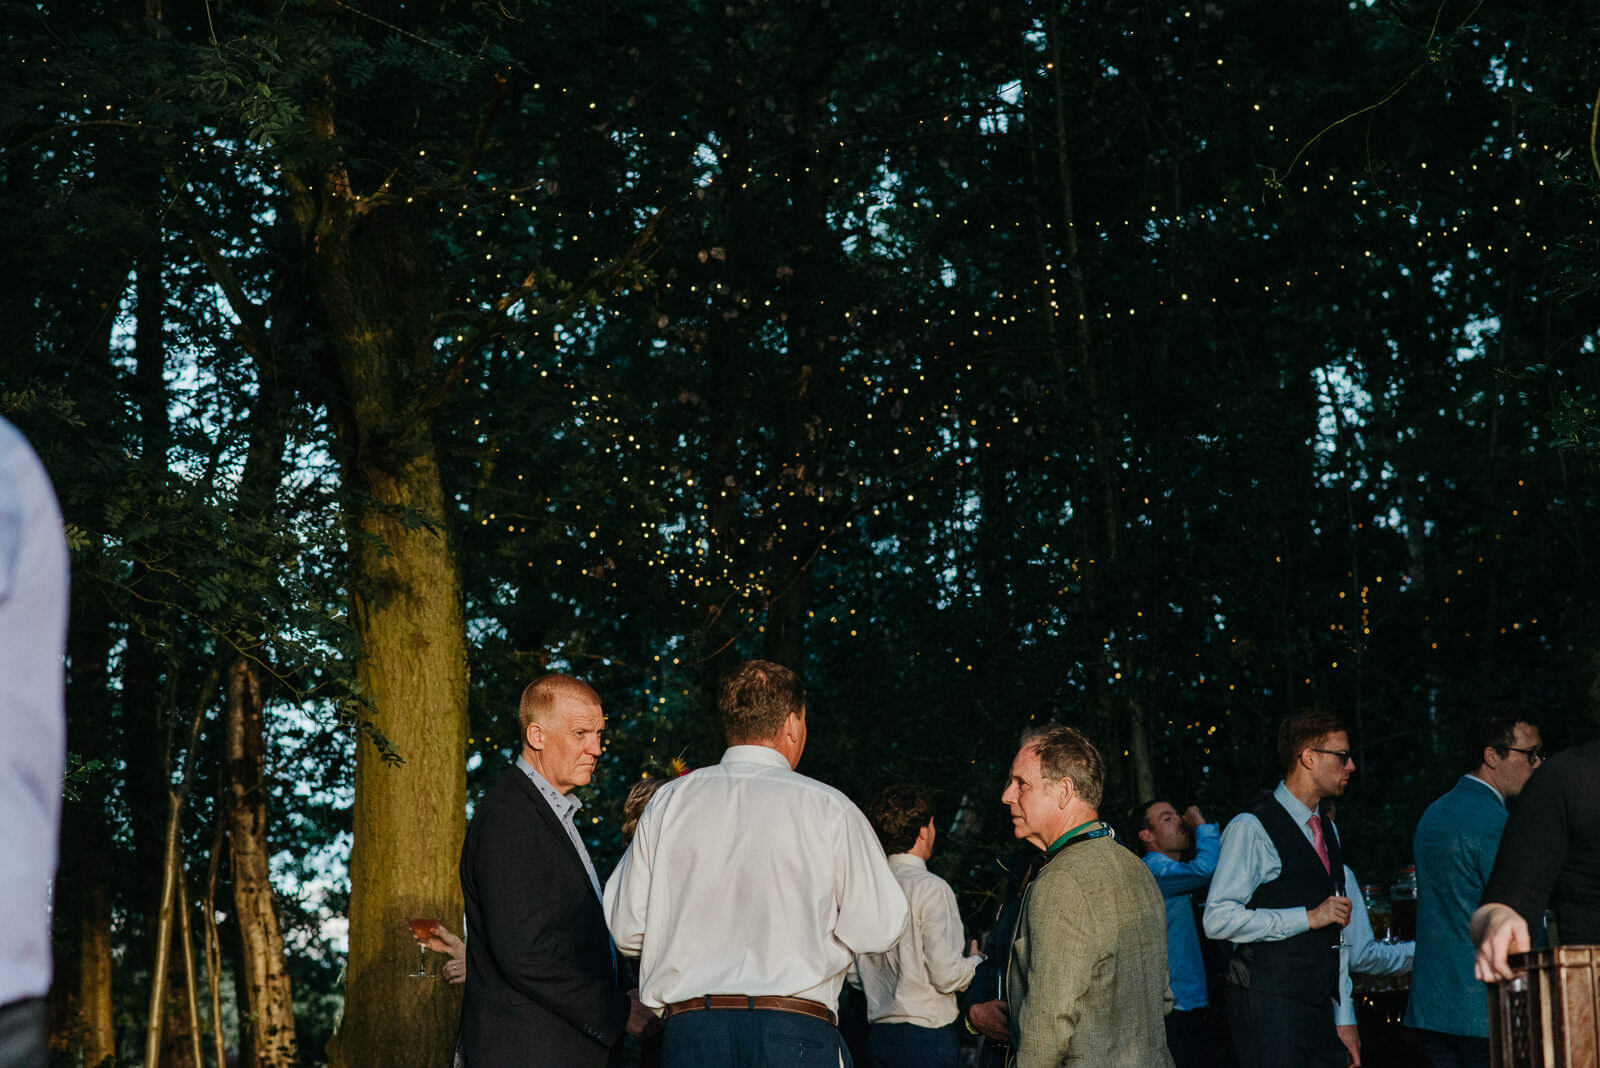 Guests chatting under fairy lit light tree canopy at Shropshire festival wedding